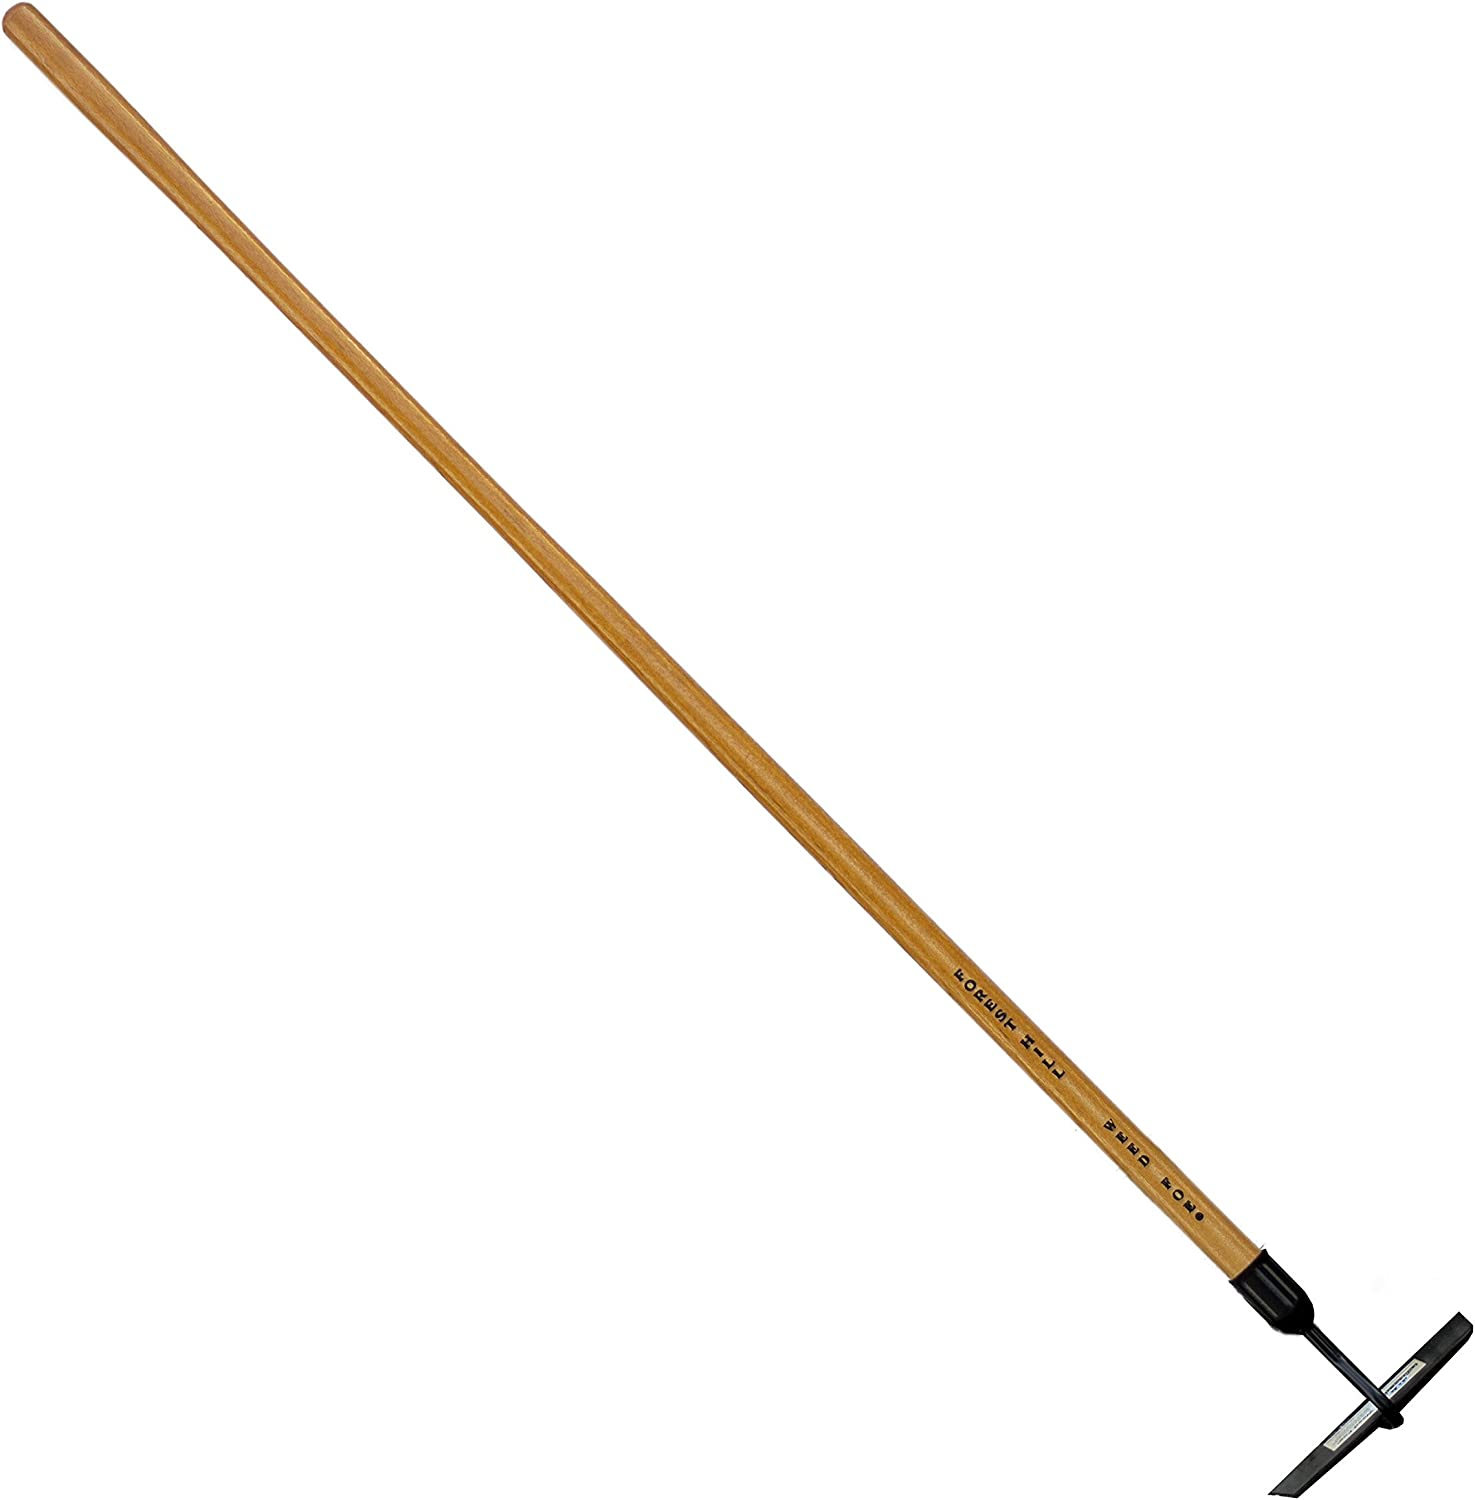 FOREST HILL Weed Foe Hardened and Tempered Spring Steel, Solid Ash Wood Handle Hoe (Crop, 2.75 x 8-inch)